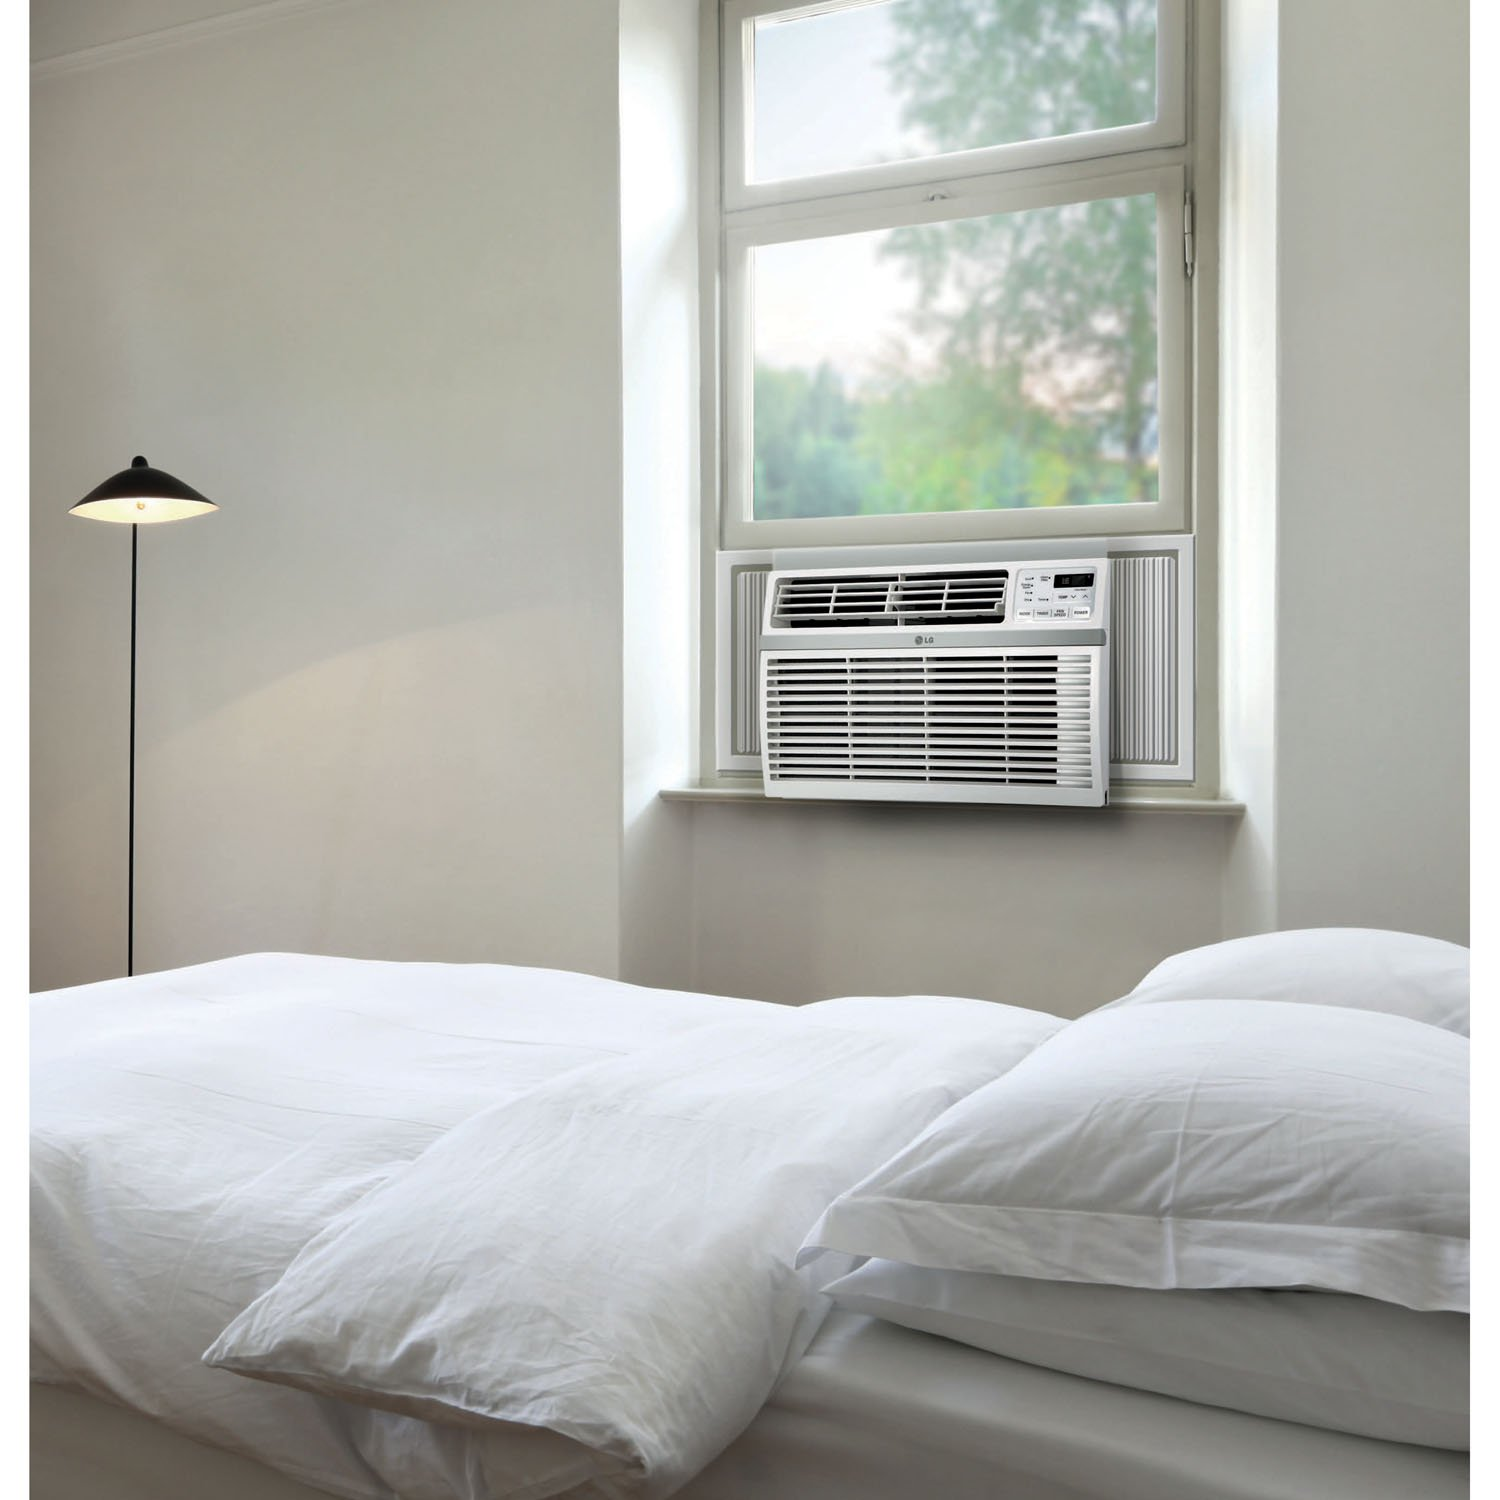 Three extra cool air conditioning units to keep you comfortable